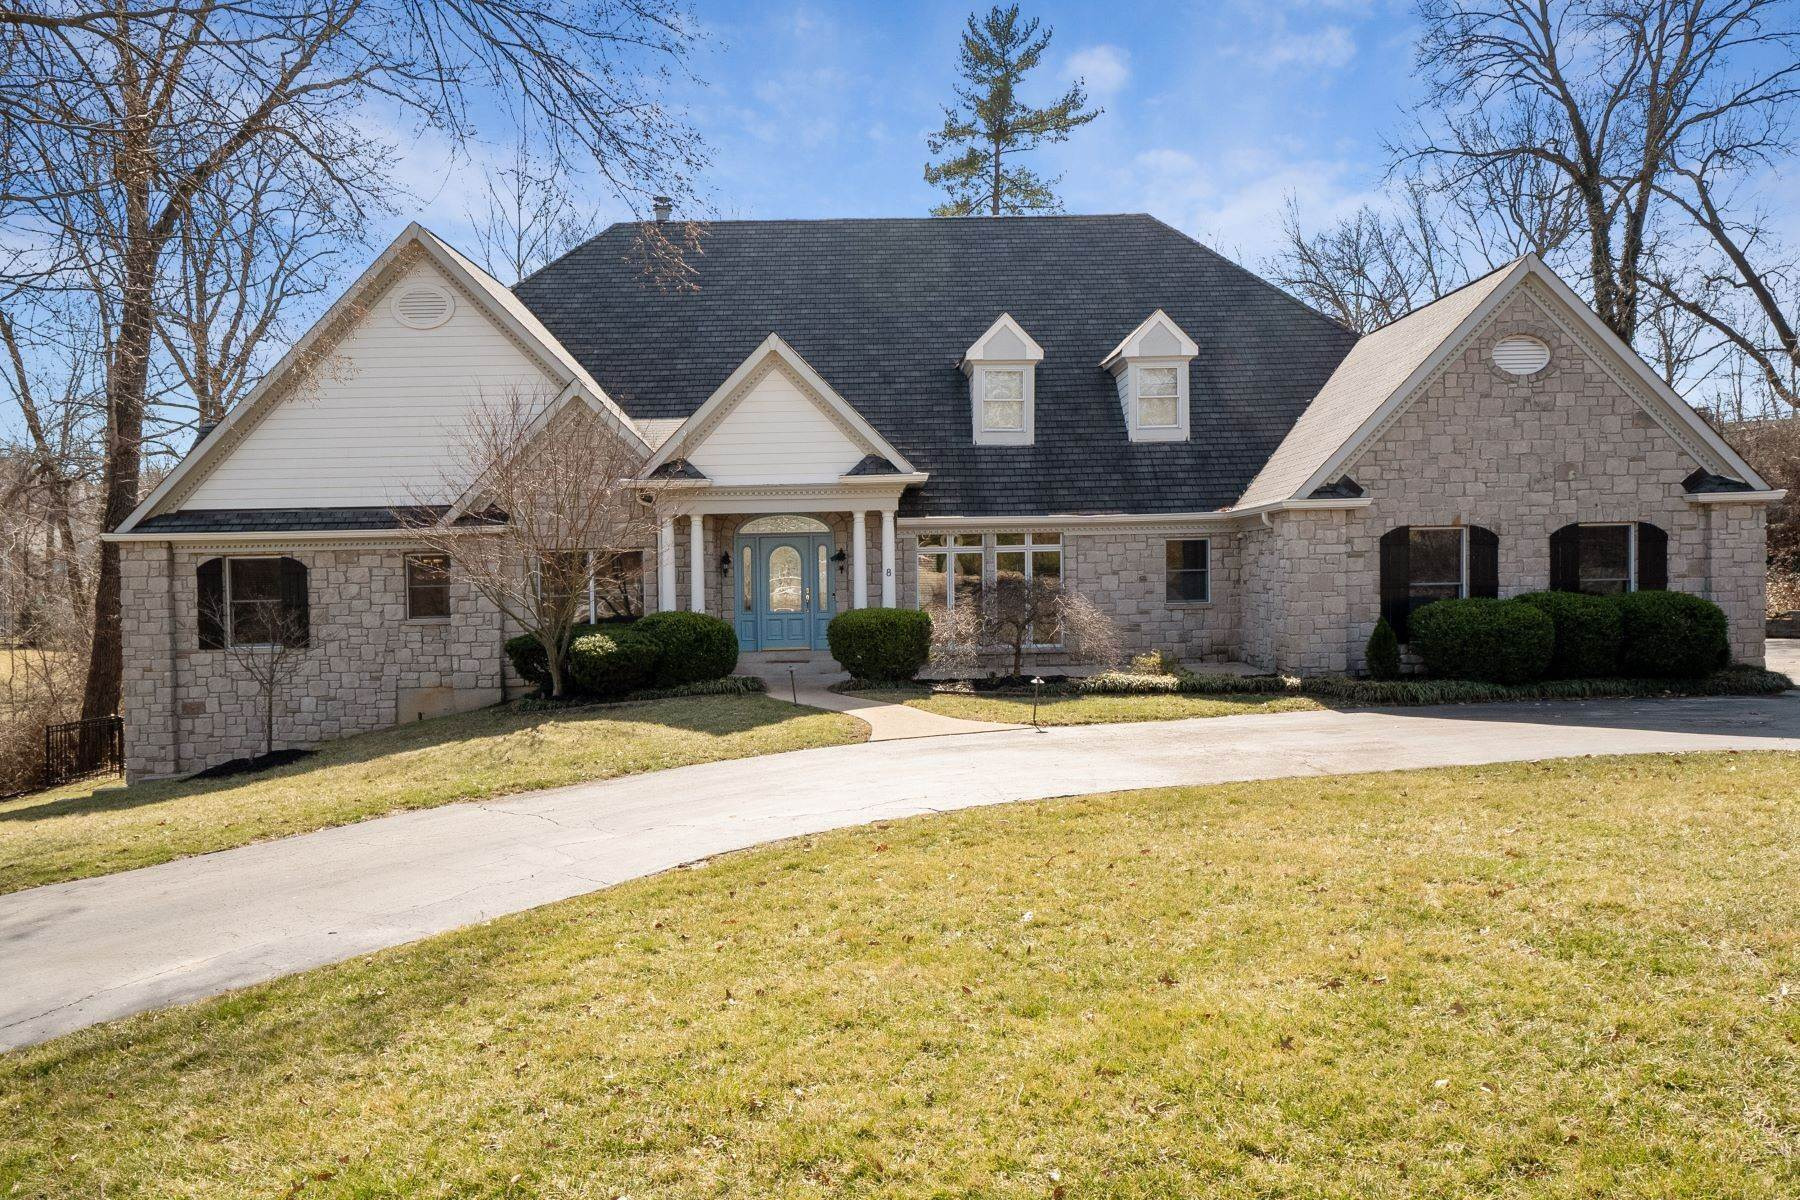 Single Family Homes for Sale at Striking Atrium Ranch In Ladue 8 Sherwyn Lane, Creve Coeur, Missouri 63141 United States